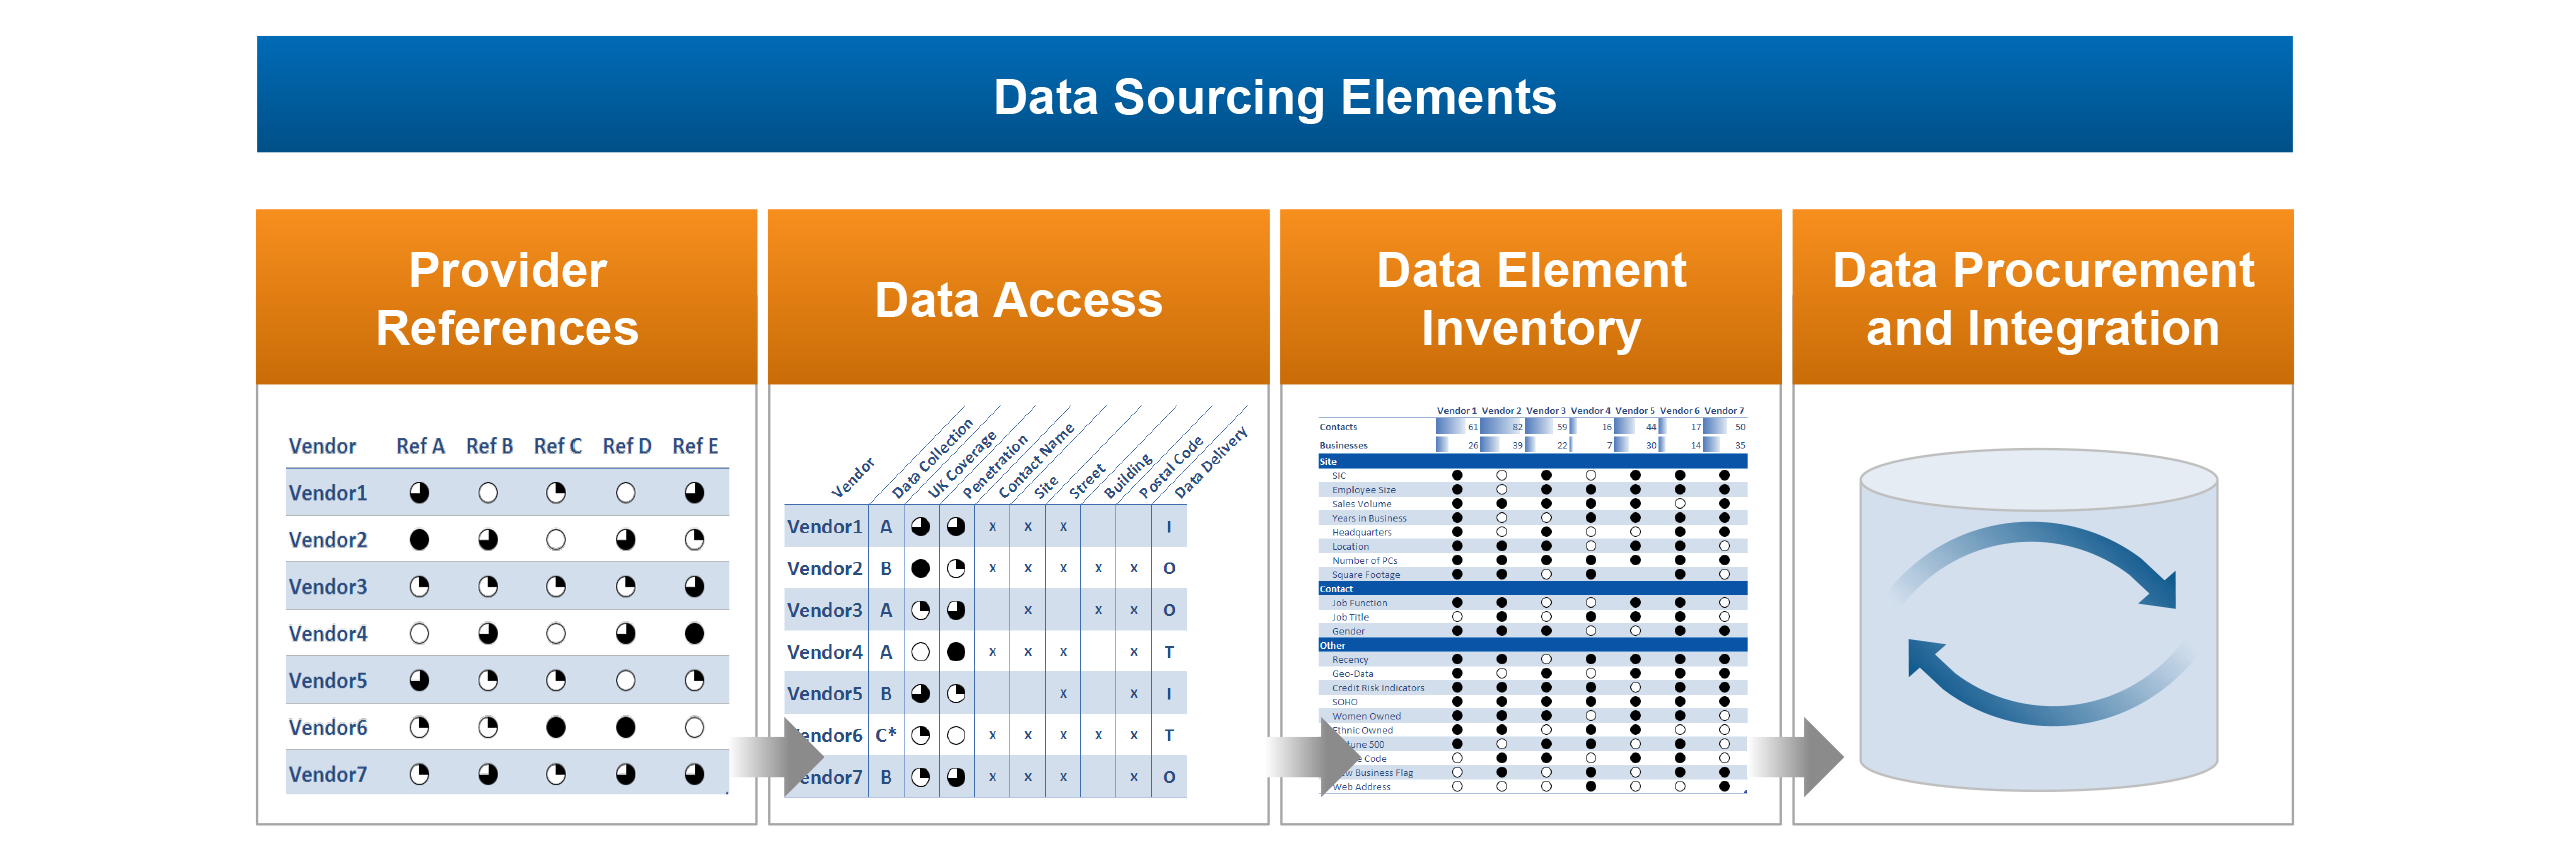 Data sourcing elements